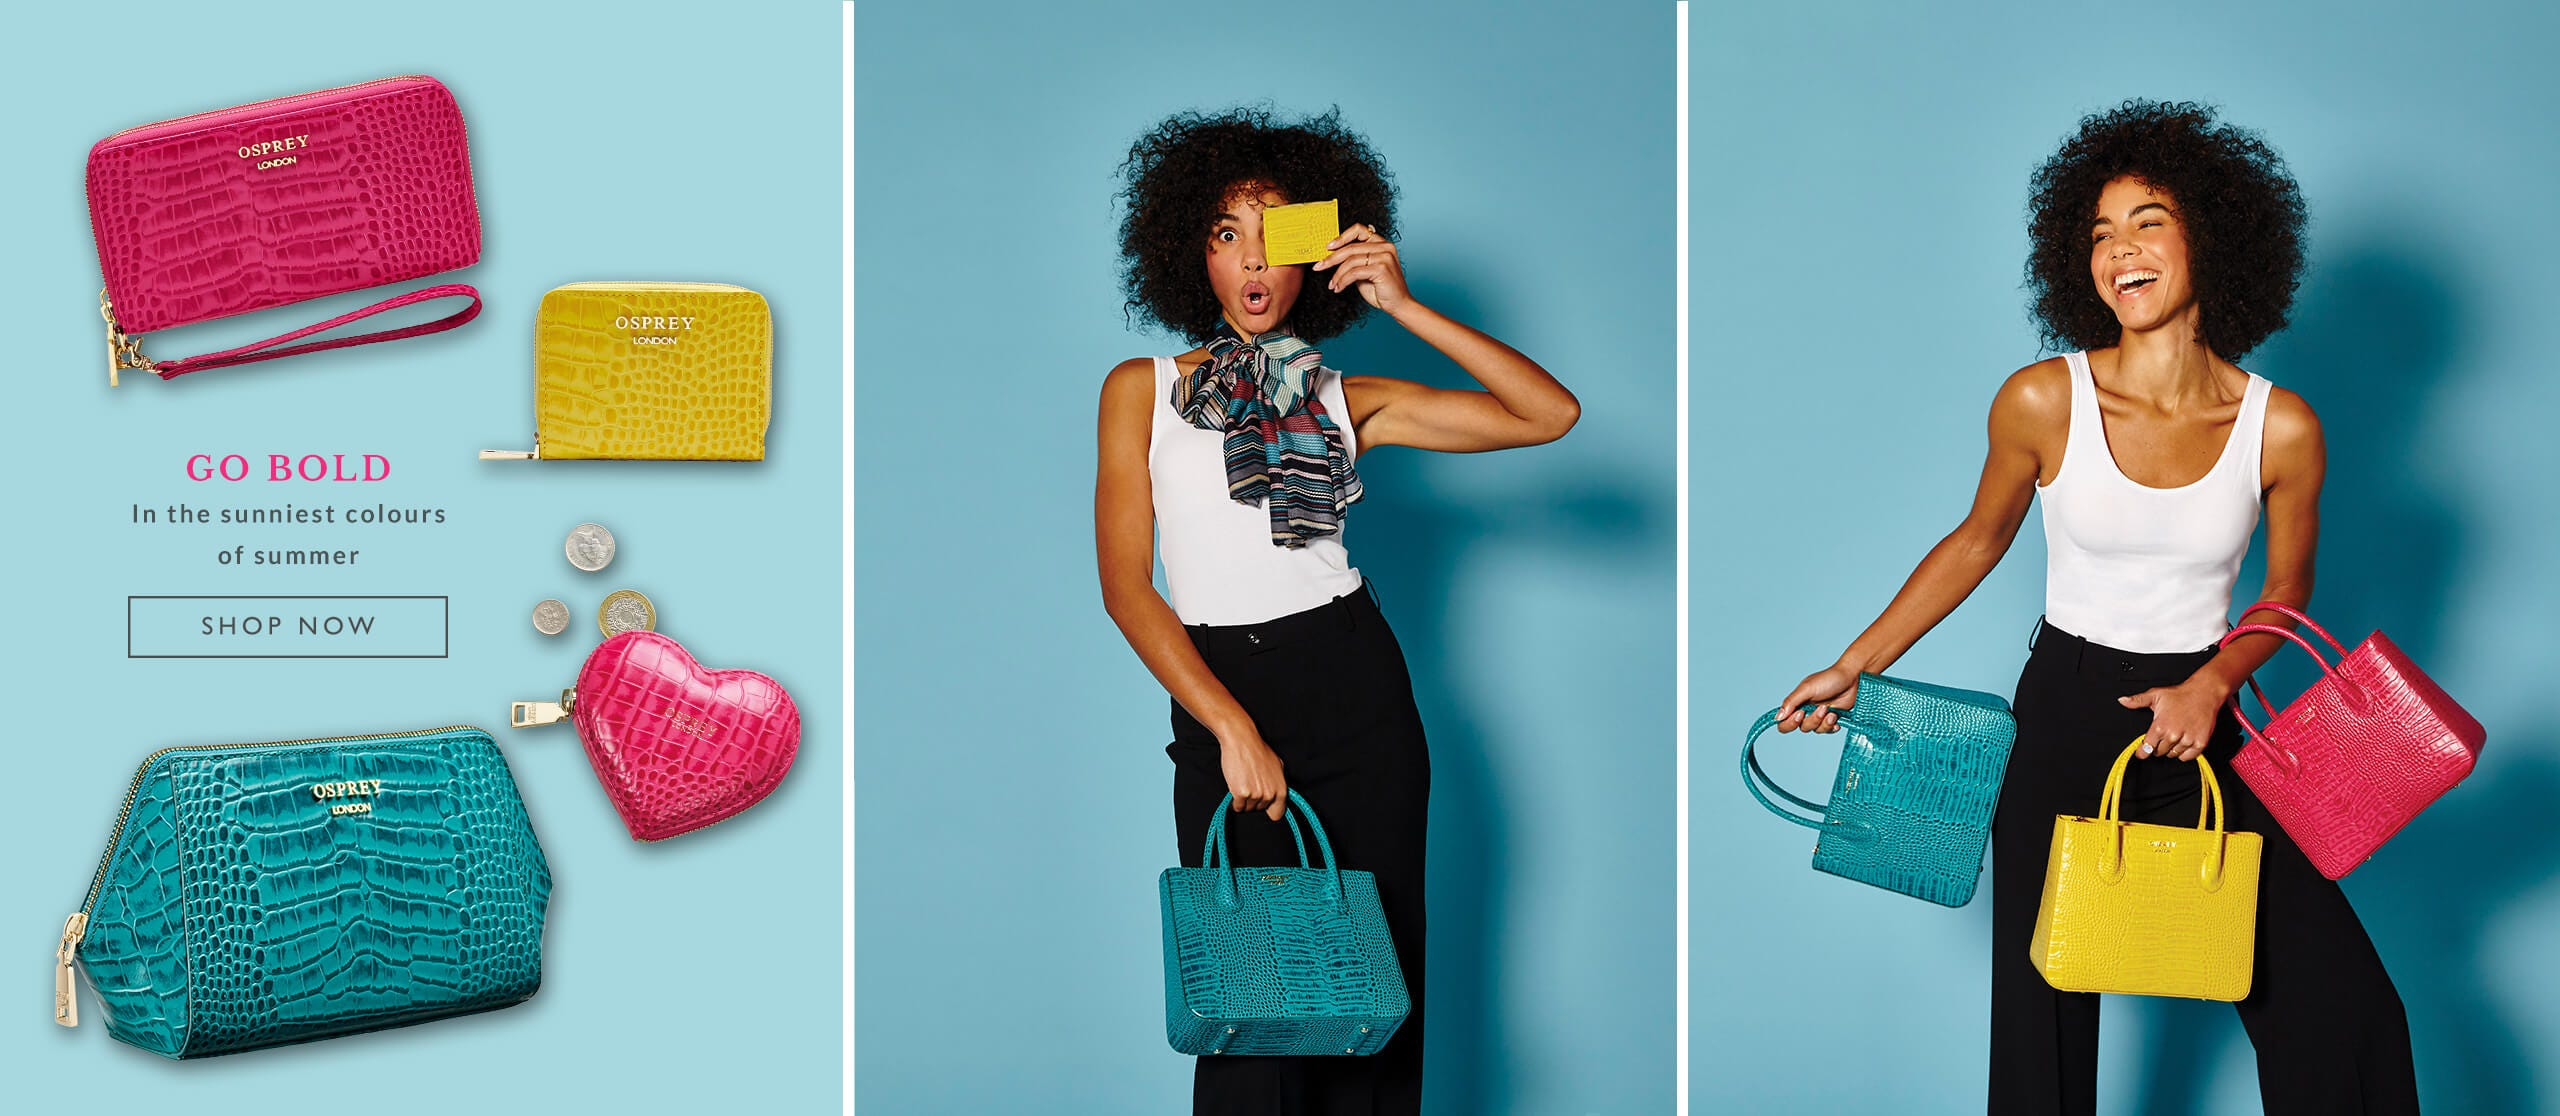 Go bold in the sunniest colours of the summer